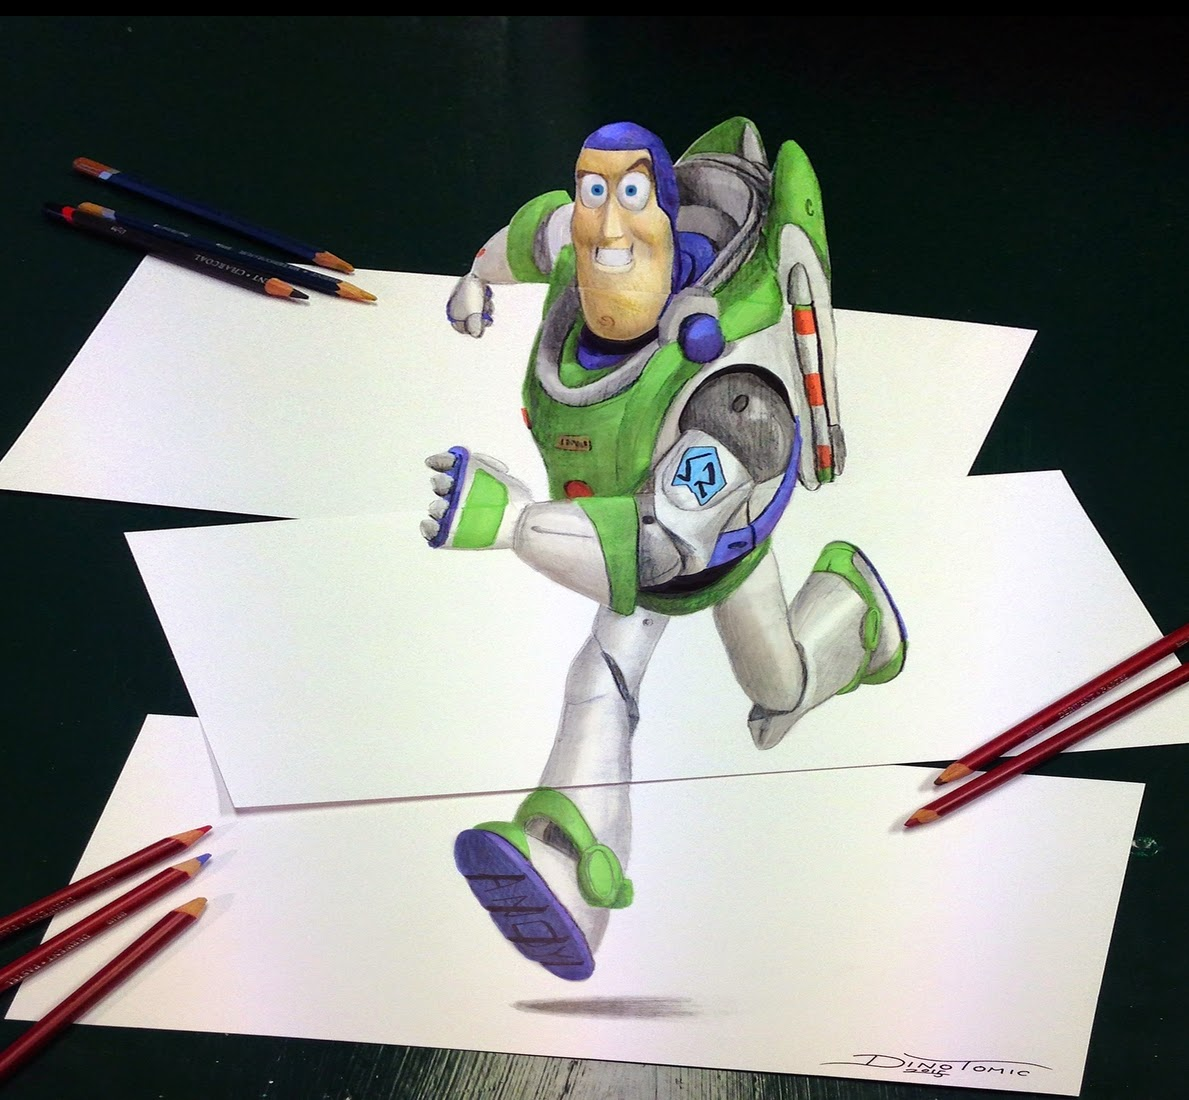 14-Buzz-Lightyear-Anamorphic-Dino-Tomic-AtomiccircuS-Mastering-Art-in-Eclectic-Drawings-www-designstack-co